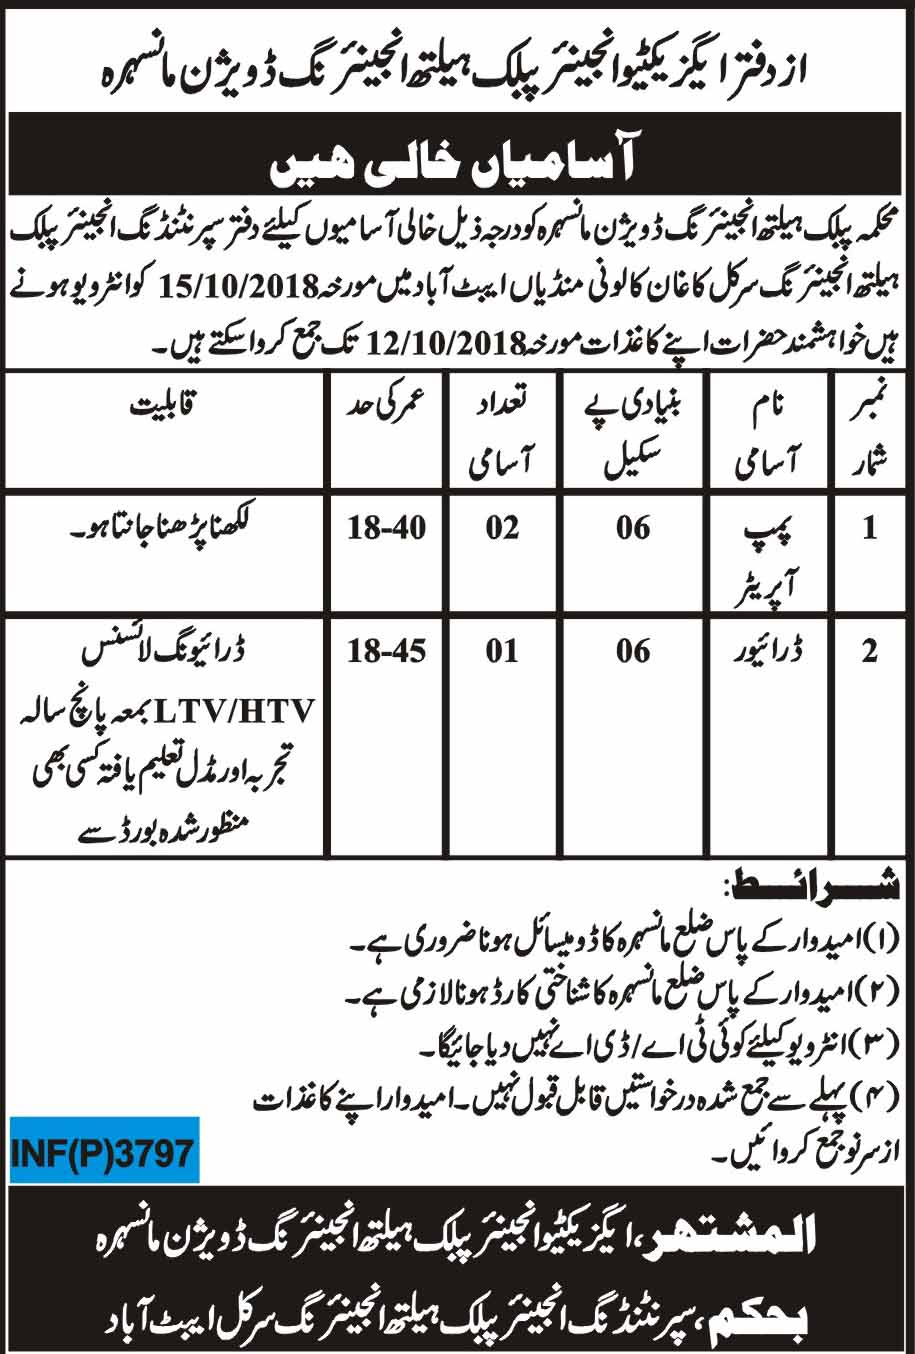 Public Health Engineering Division Mansehra Jobs 2018